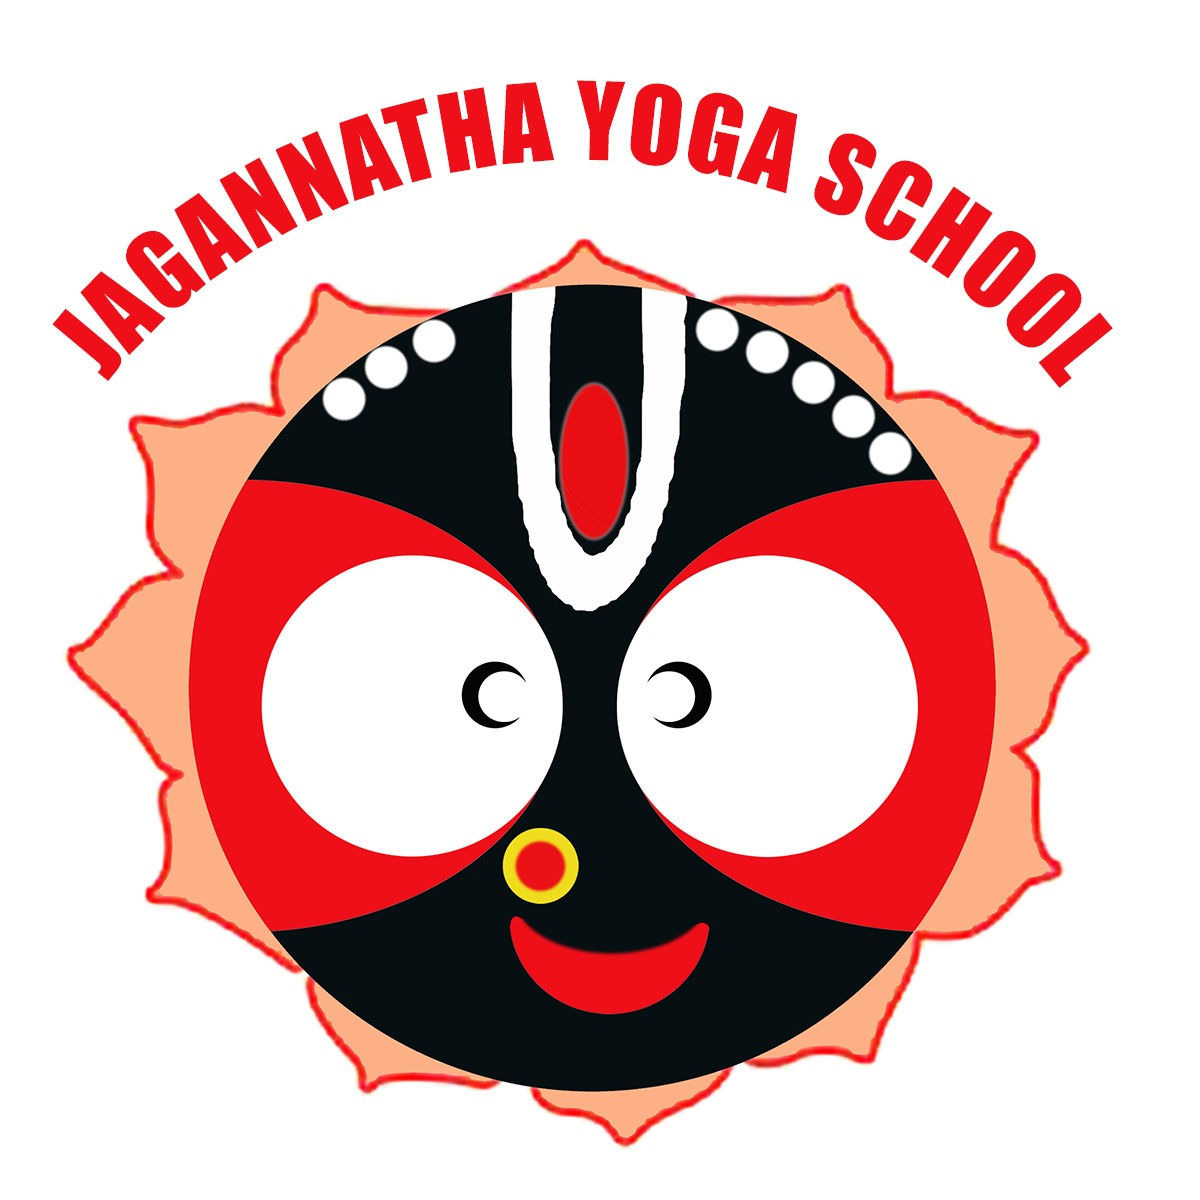 Jagannatha Yoga School